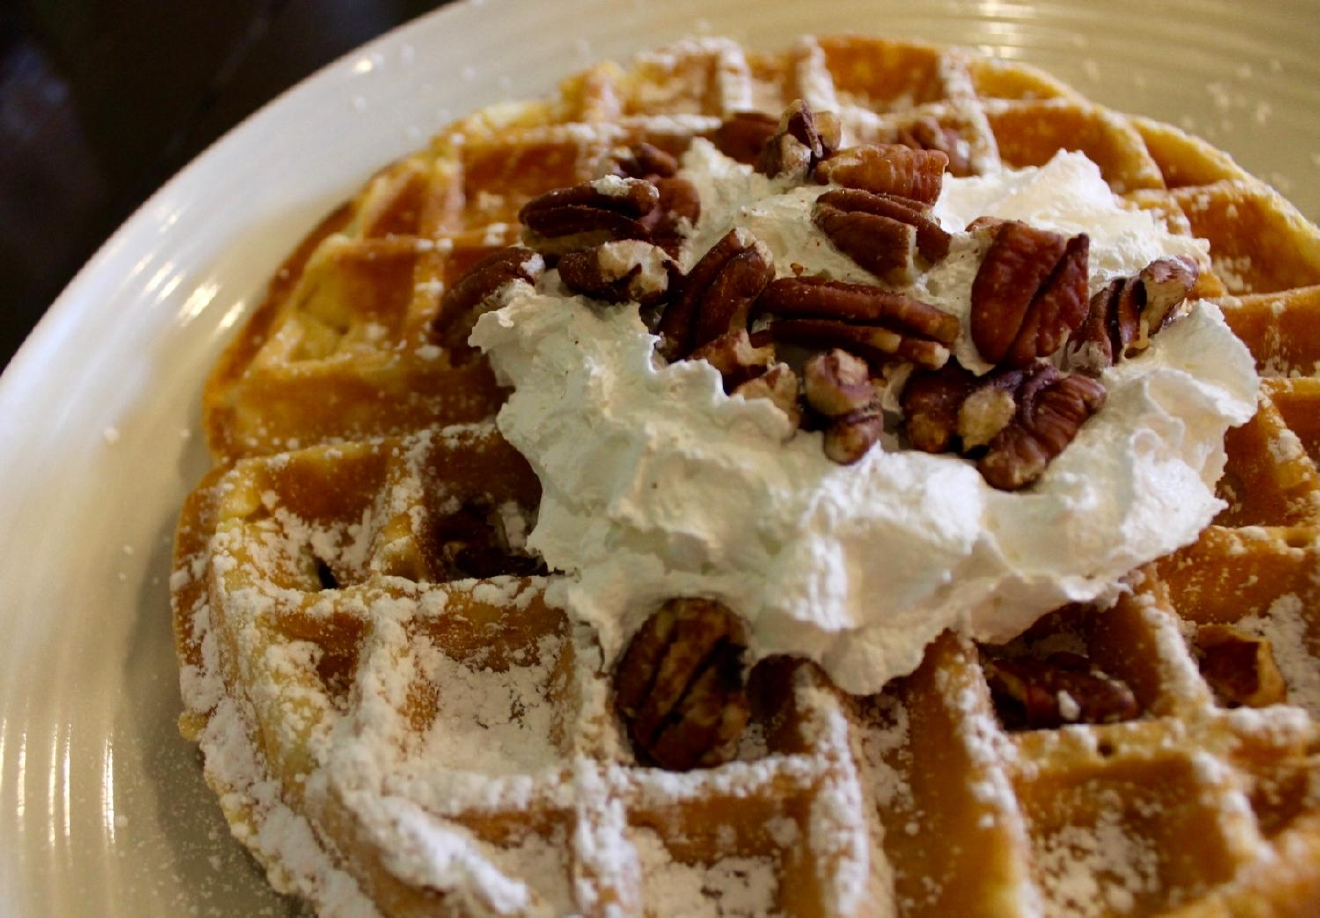 Belgian waffle with whipped cream, maple syrup, and pecans / Image: Rose Brewington // Published: 1.4.17